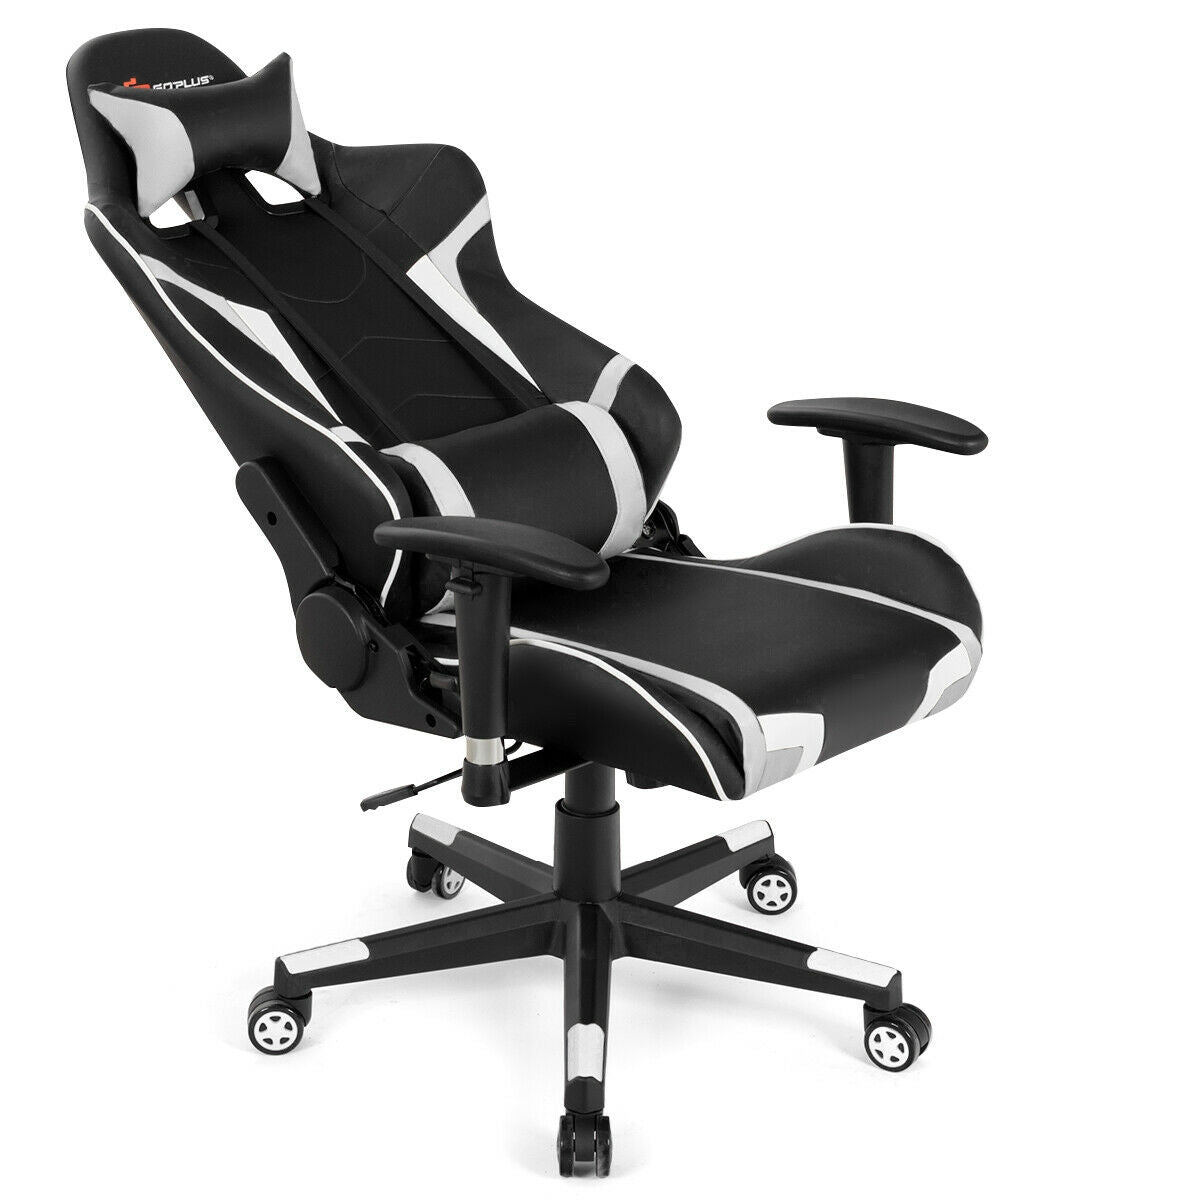 Reclining Swive Massage Gaming Chair-White